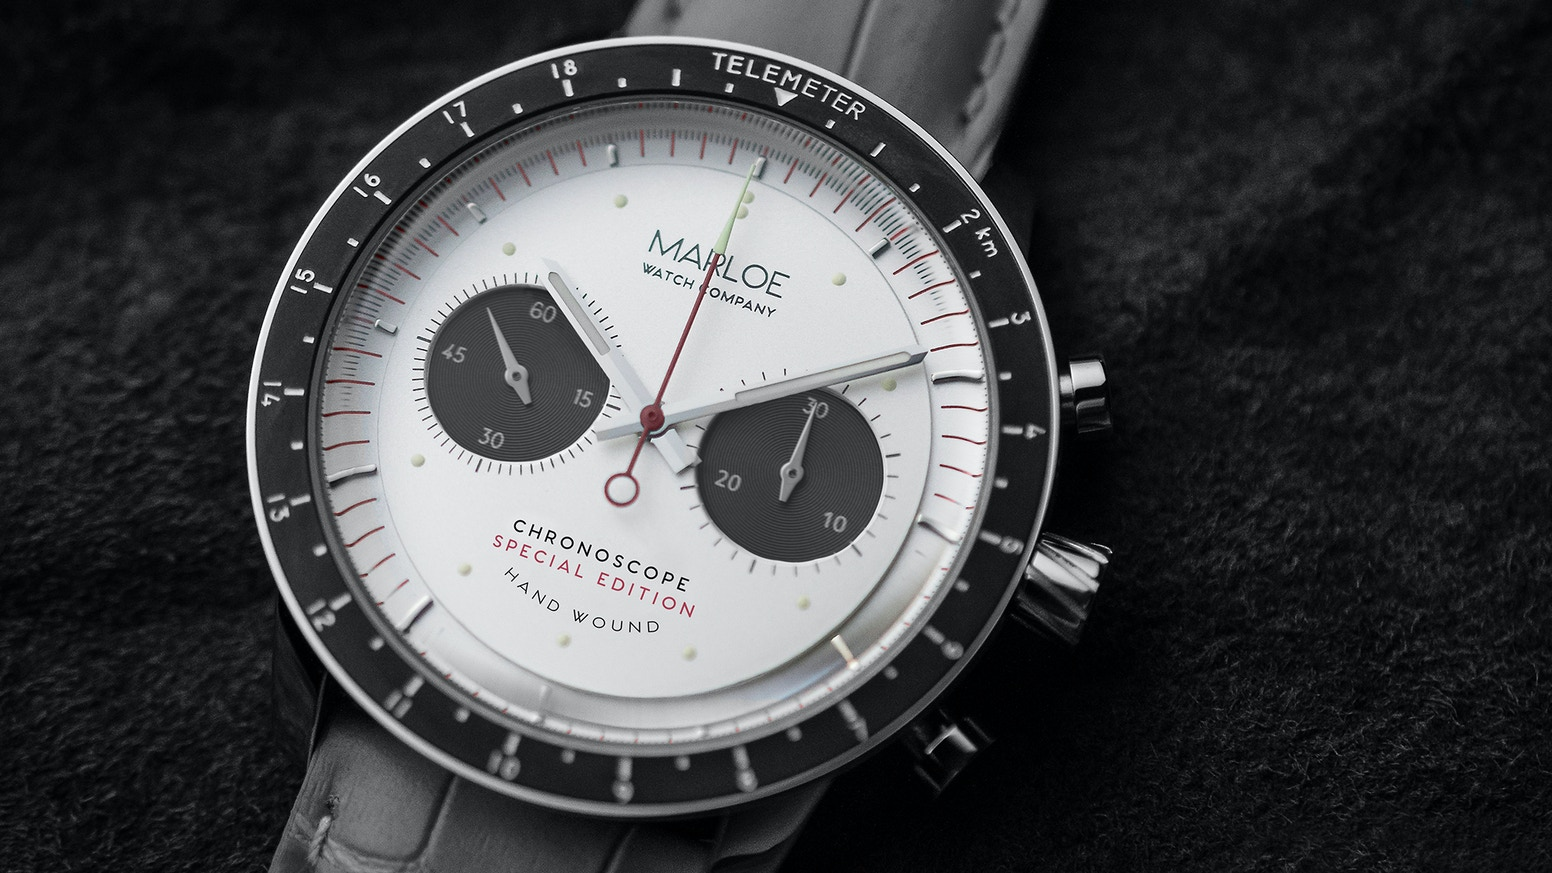 Join the hand-wound revolution! A new manual mechanical watch with exhibition caseback from Marloe Watch Company.